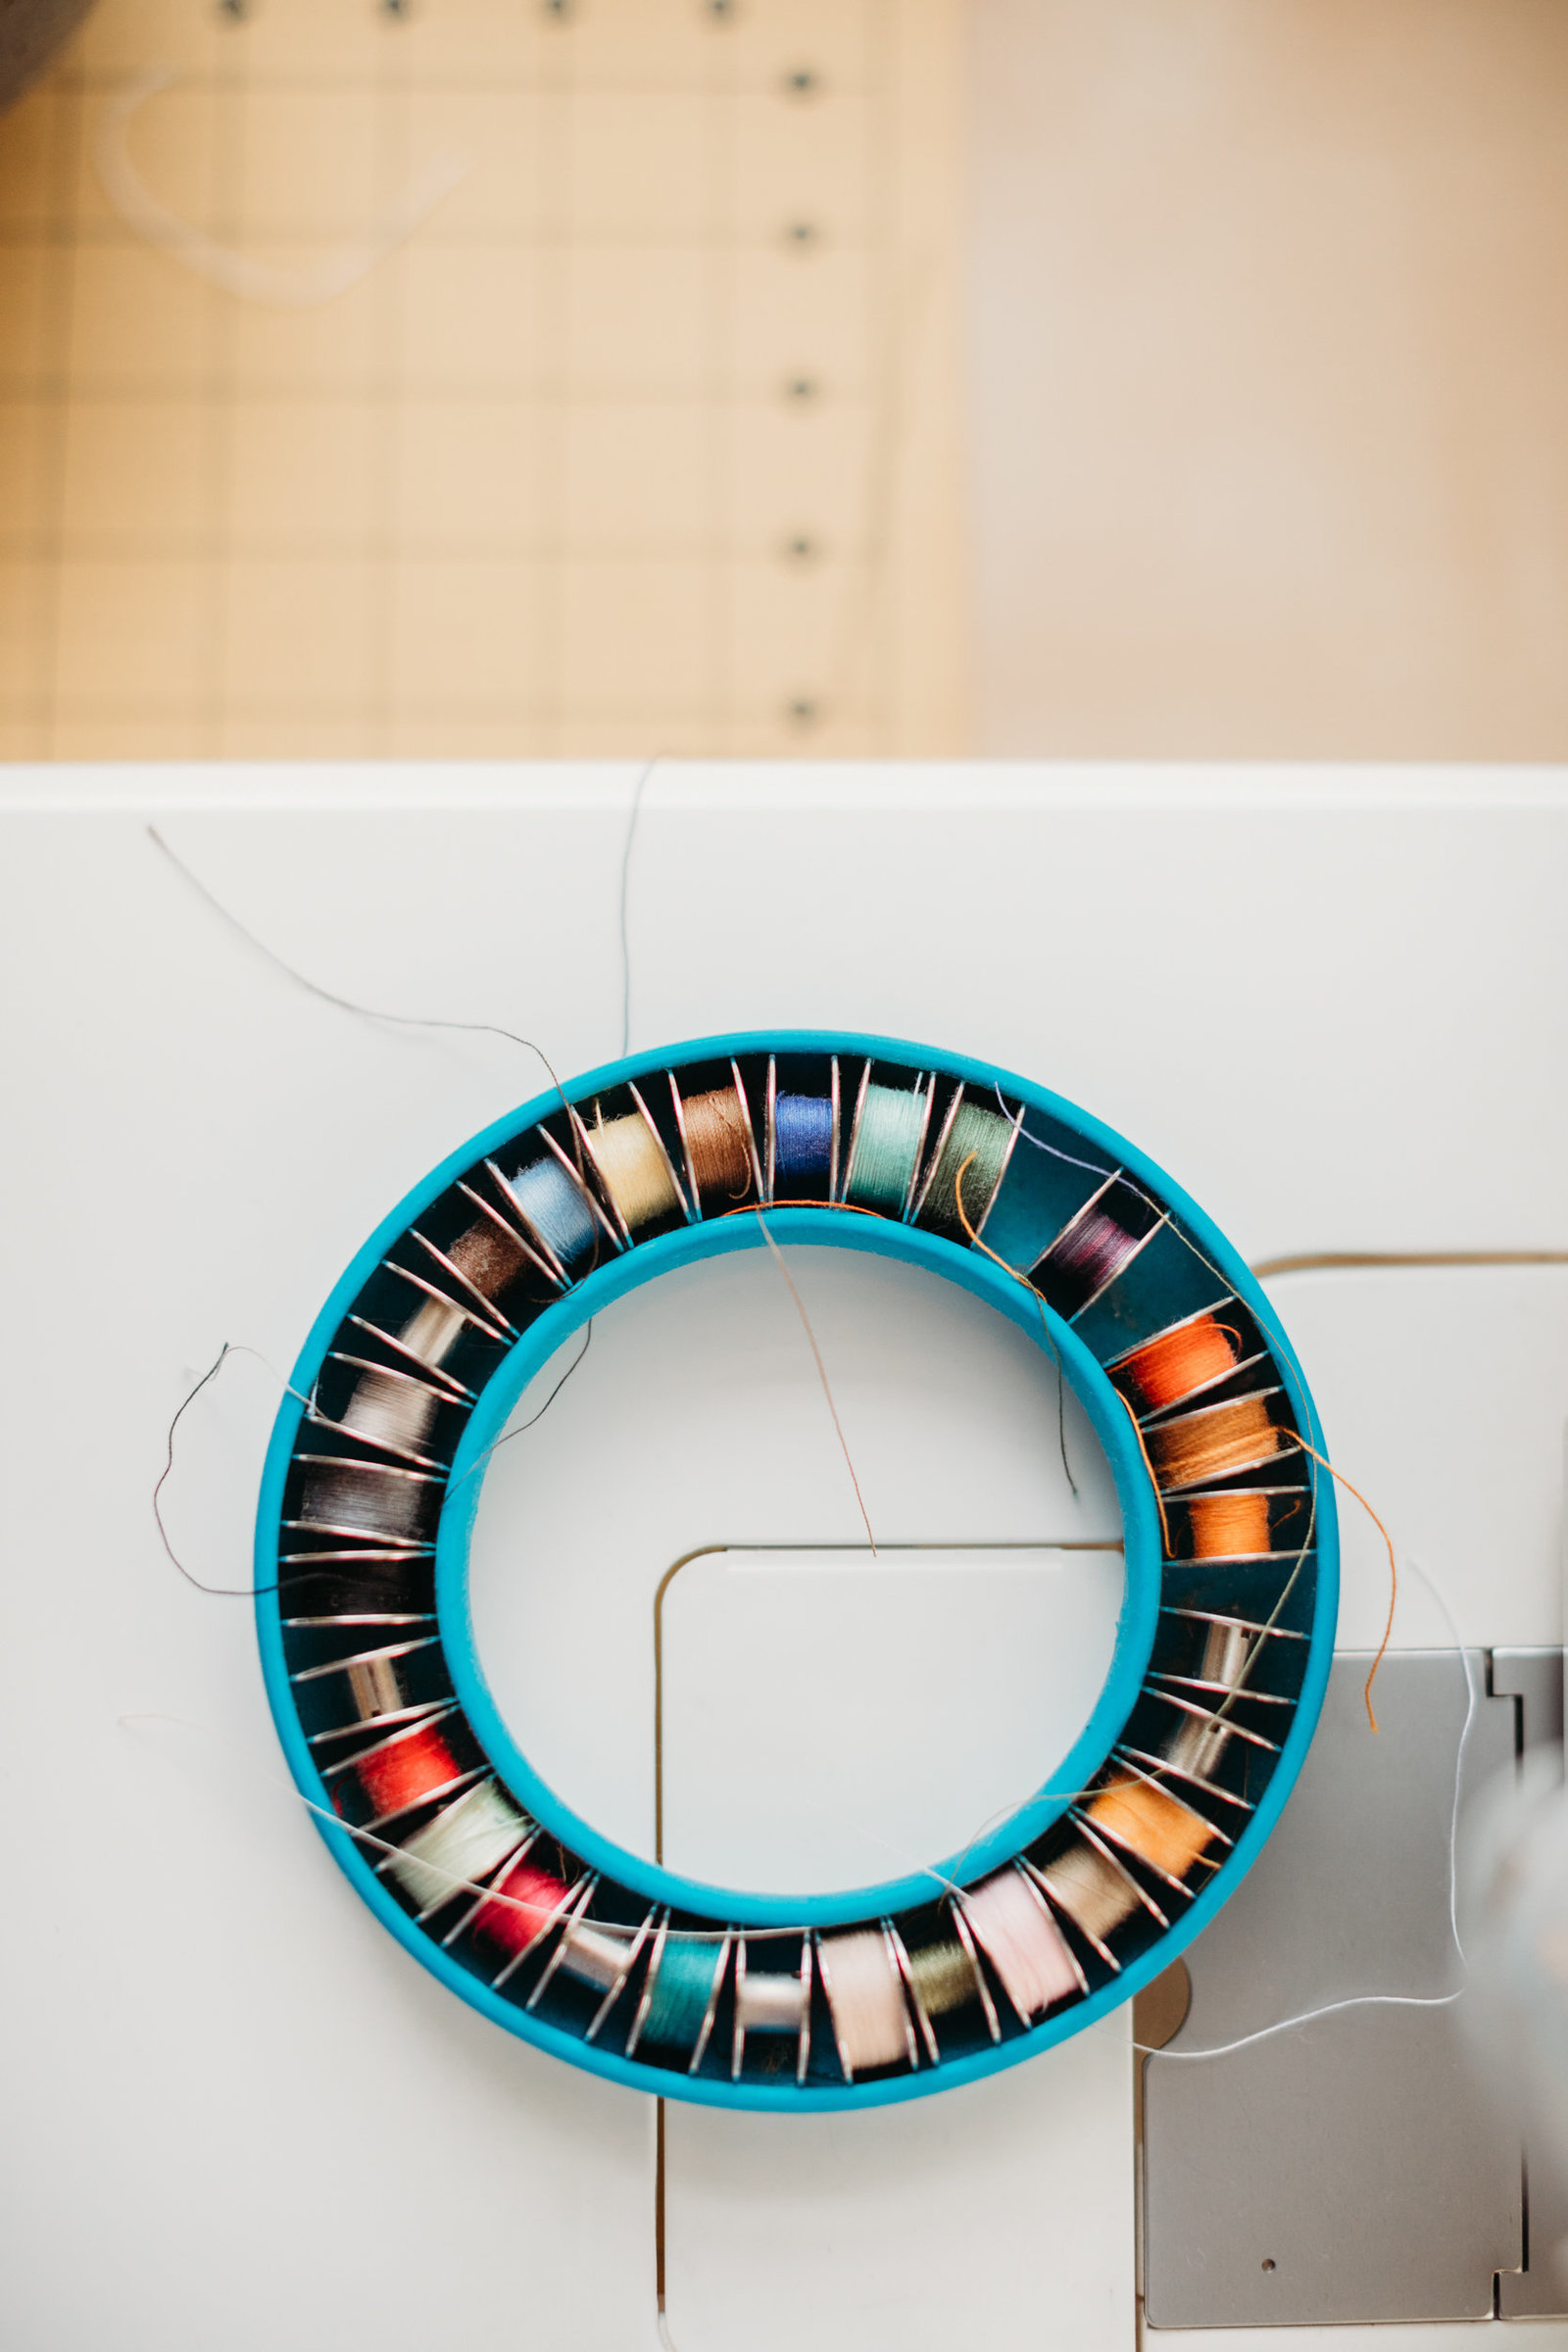 spool of colorful thread on a sewing machine in a boston studio